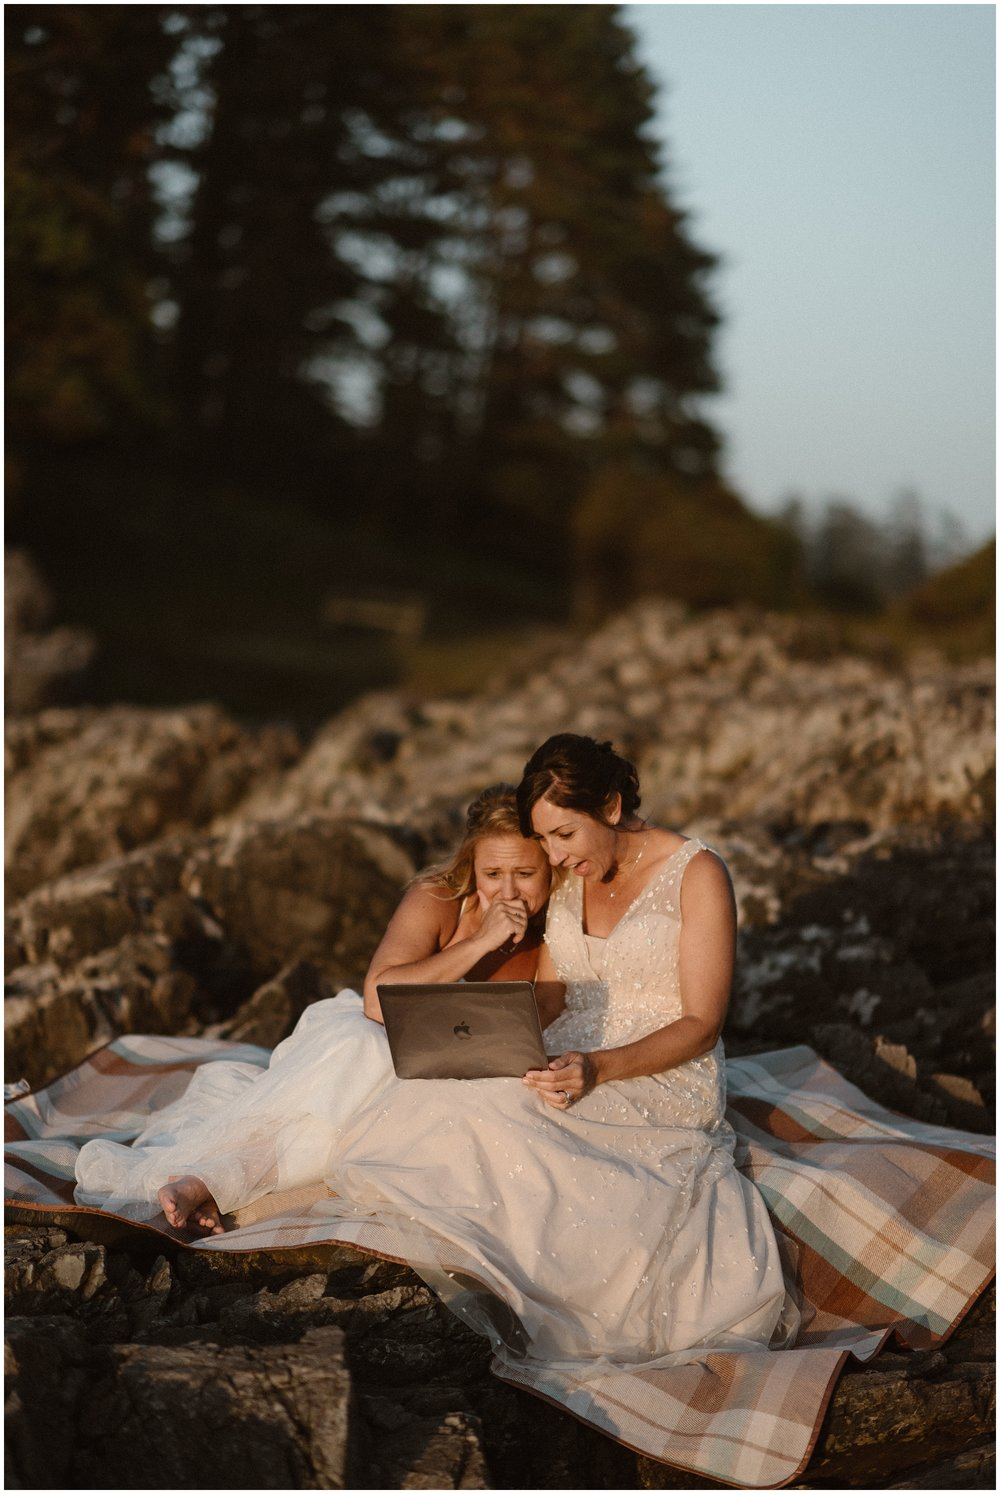 Two brides sit on a rocky ledge on top of a tan and blue plaid blanket with a laptop on their laps. One bride holds her hand up to her mouth, holding back emotion, while the other bride opens her mouth wide in surprise. Skyping or FaceTiming with family is a great way to elope with immediate family without them actually being present for your ceremony.